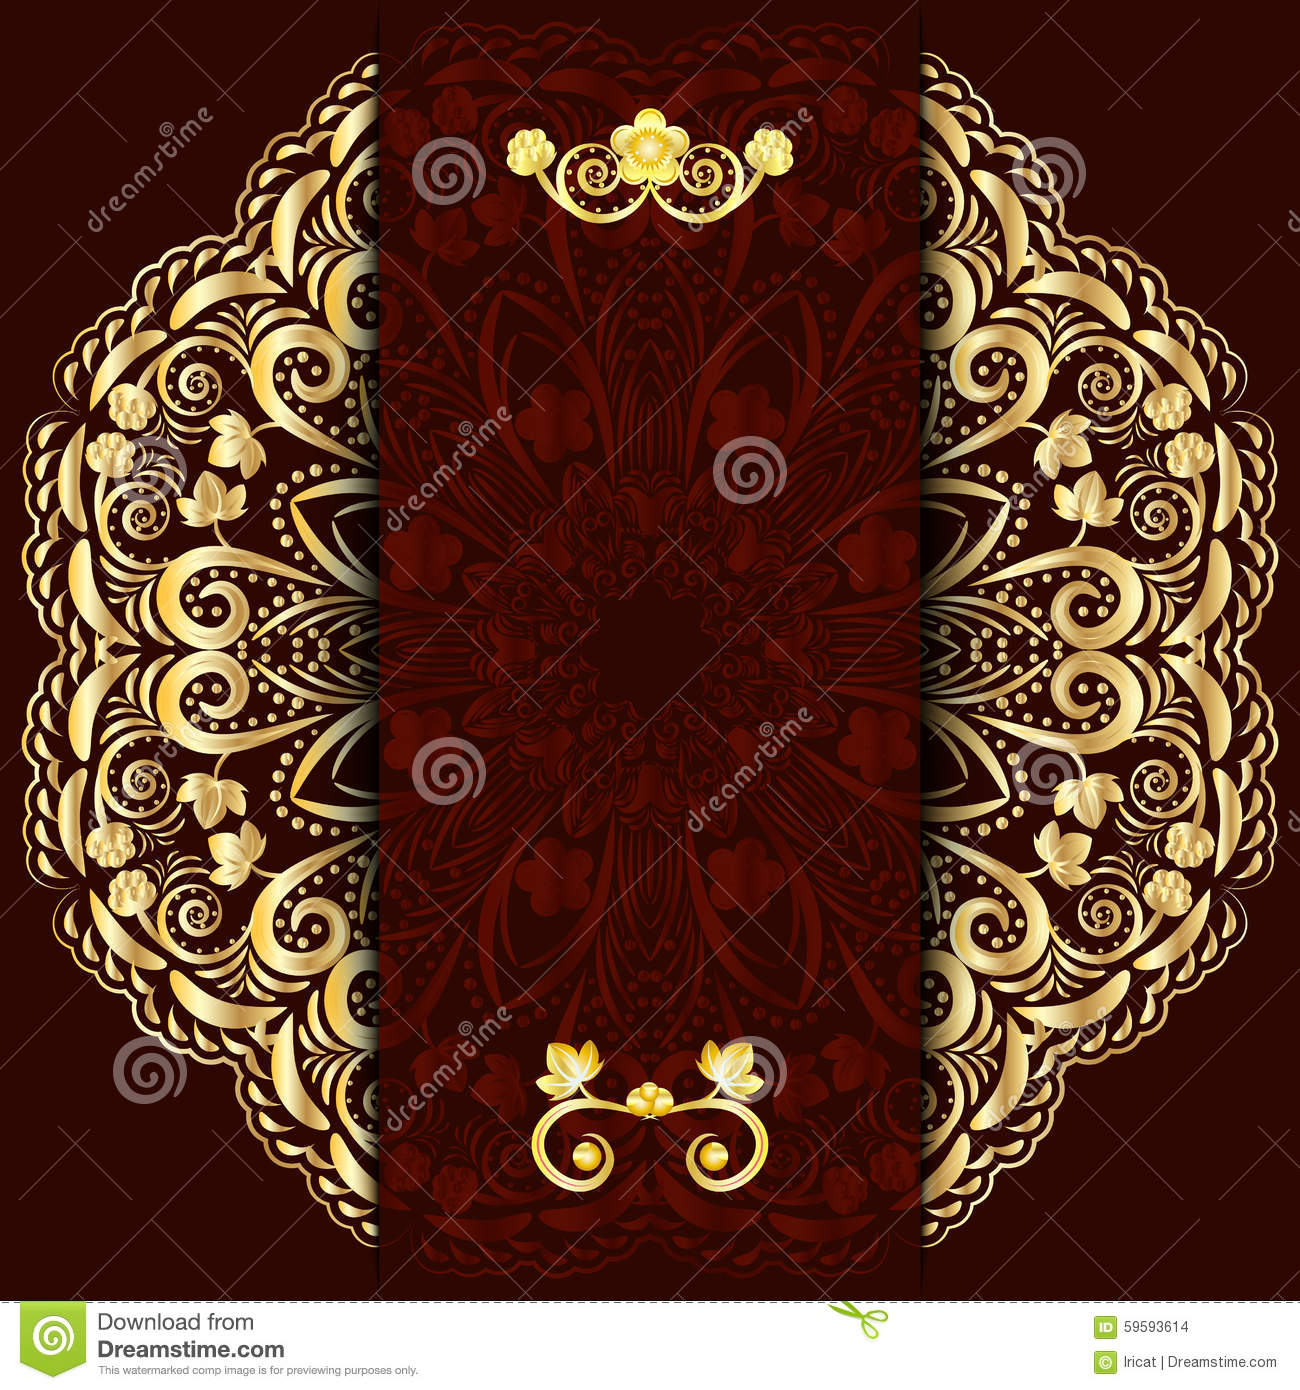 Rich Dark Background With Gold Floral Mandala Template